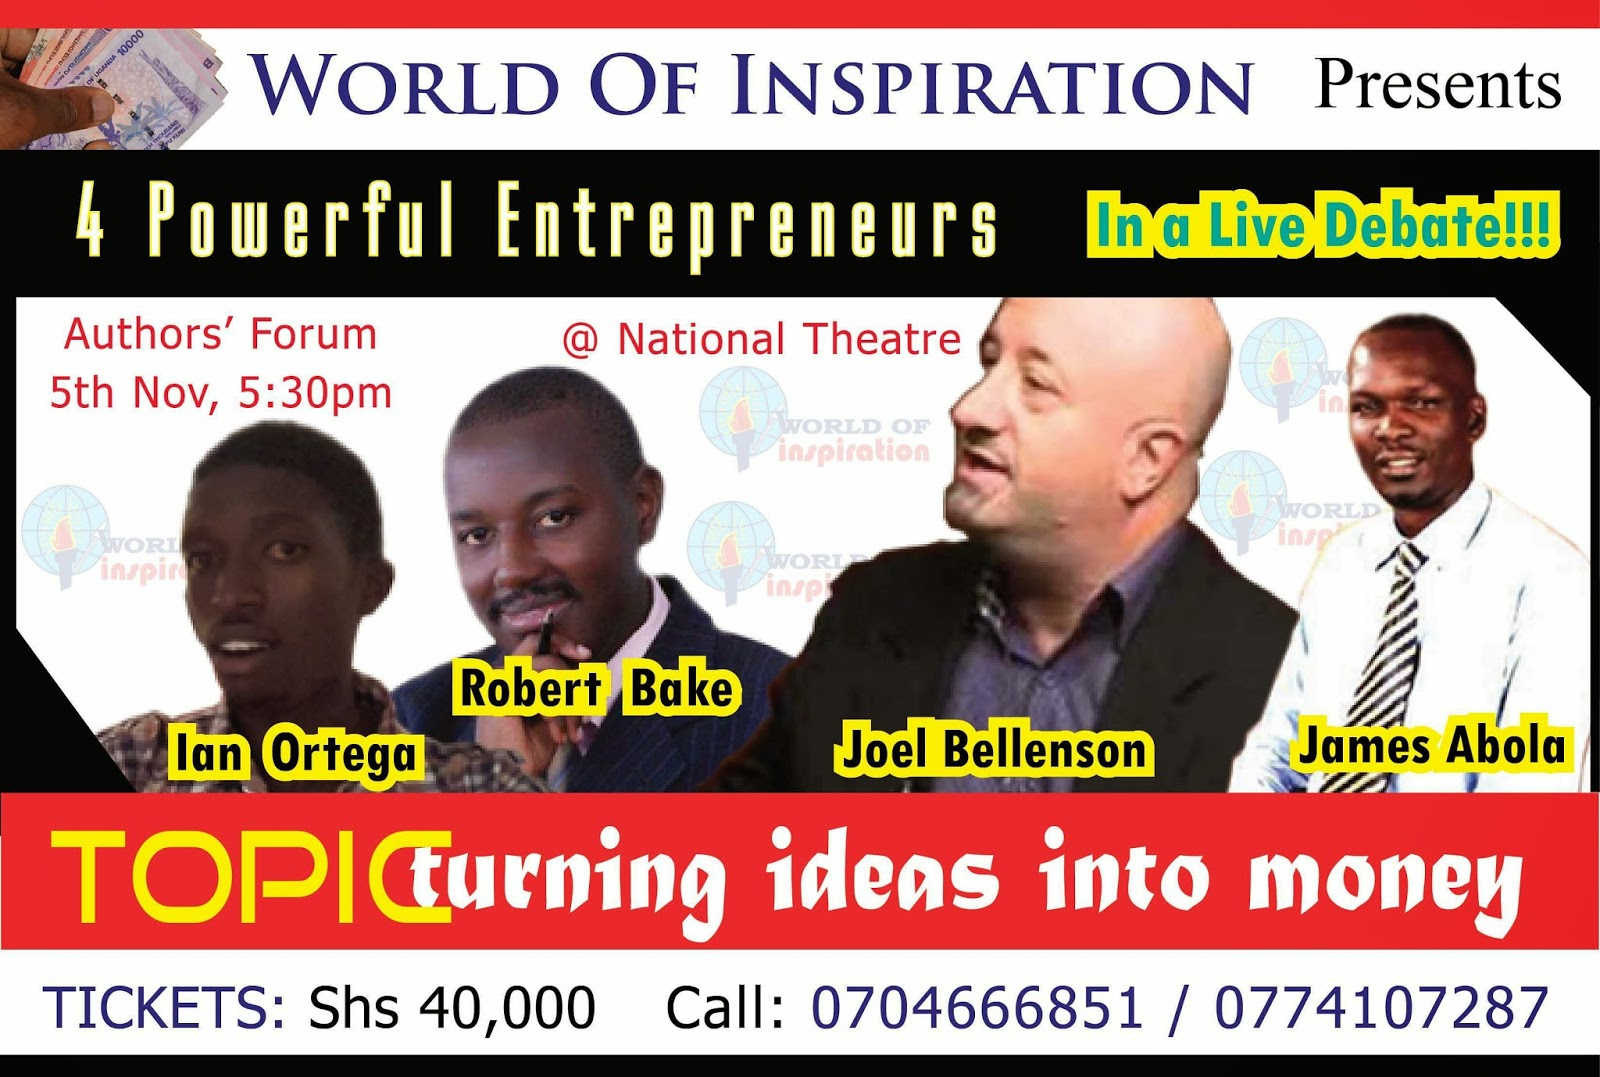 WORLD OF INSPIRATION: October 2014